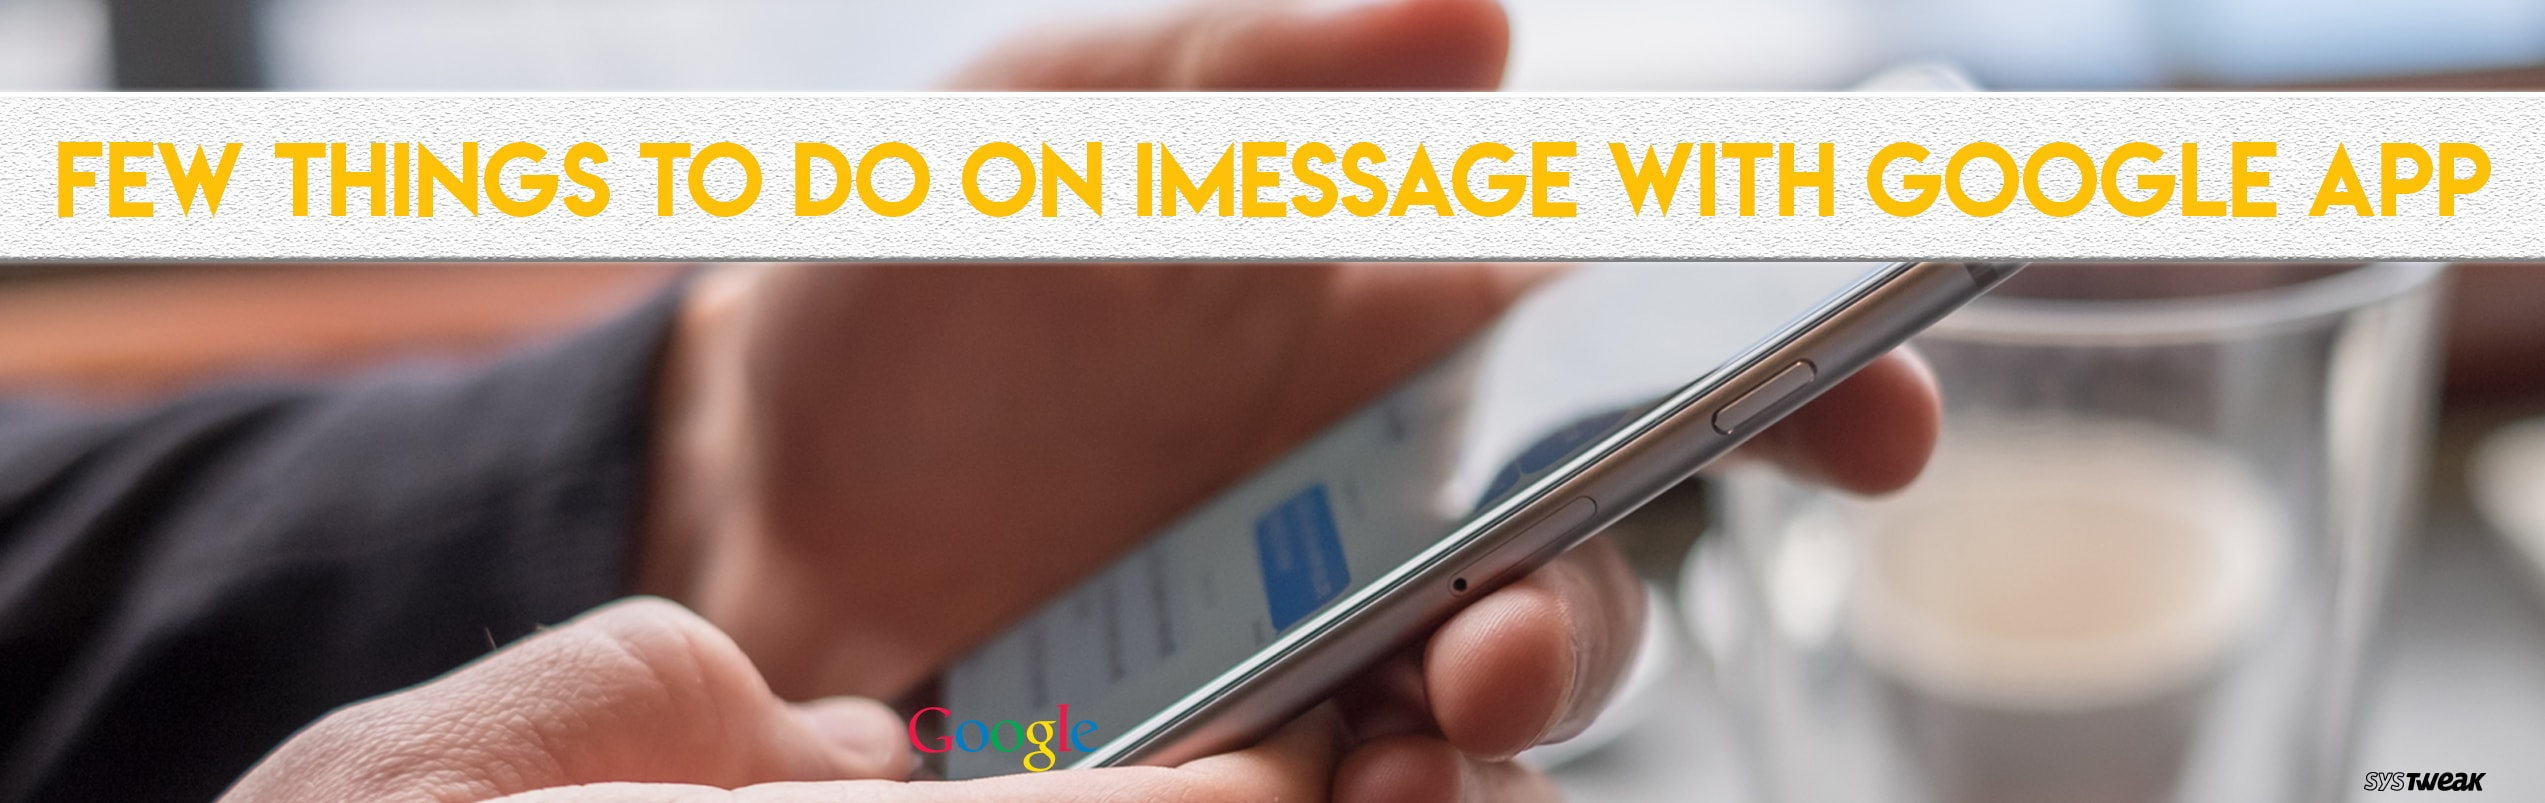 7 Fun Things To Do on iMessage Using Google App